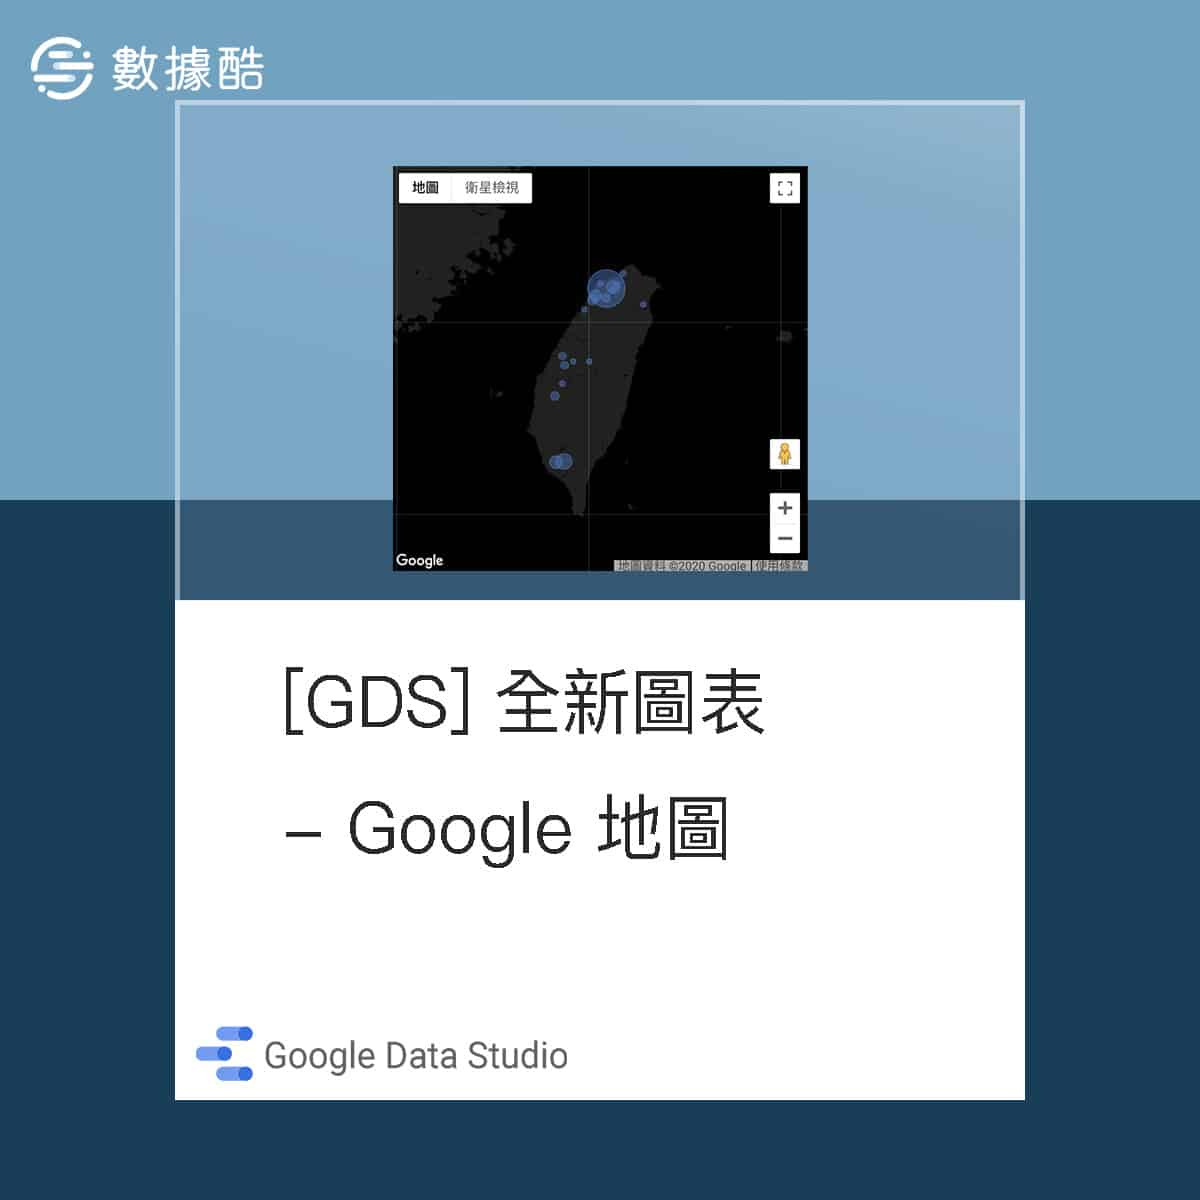 Google Data Studio 全新圖表 - Google Map